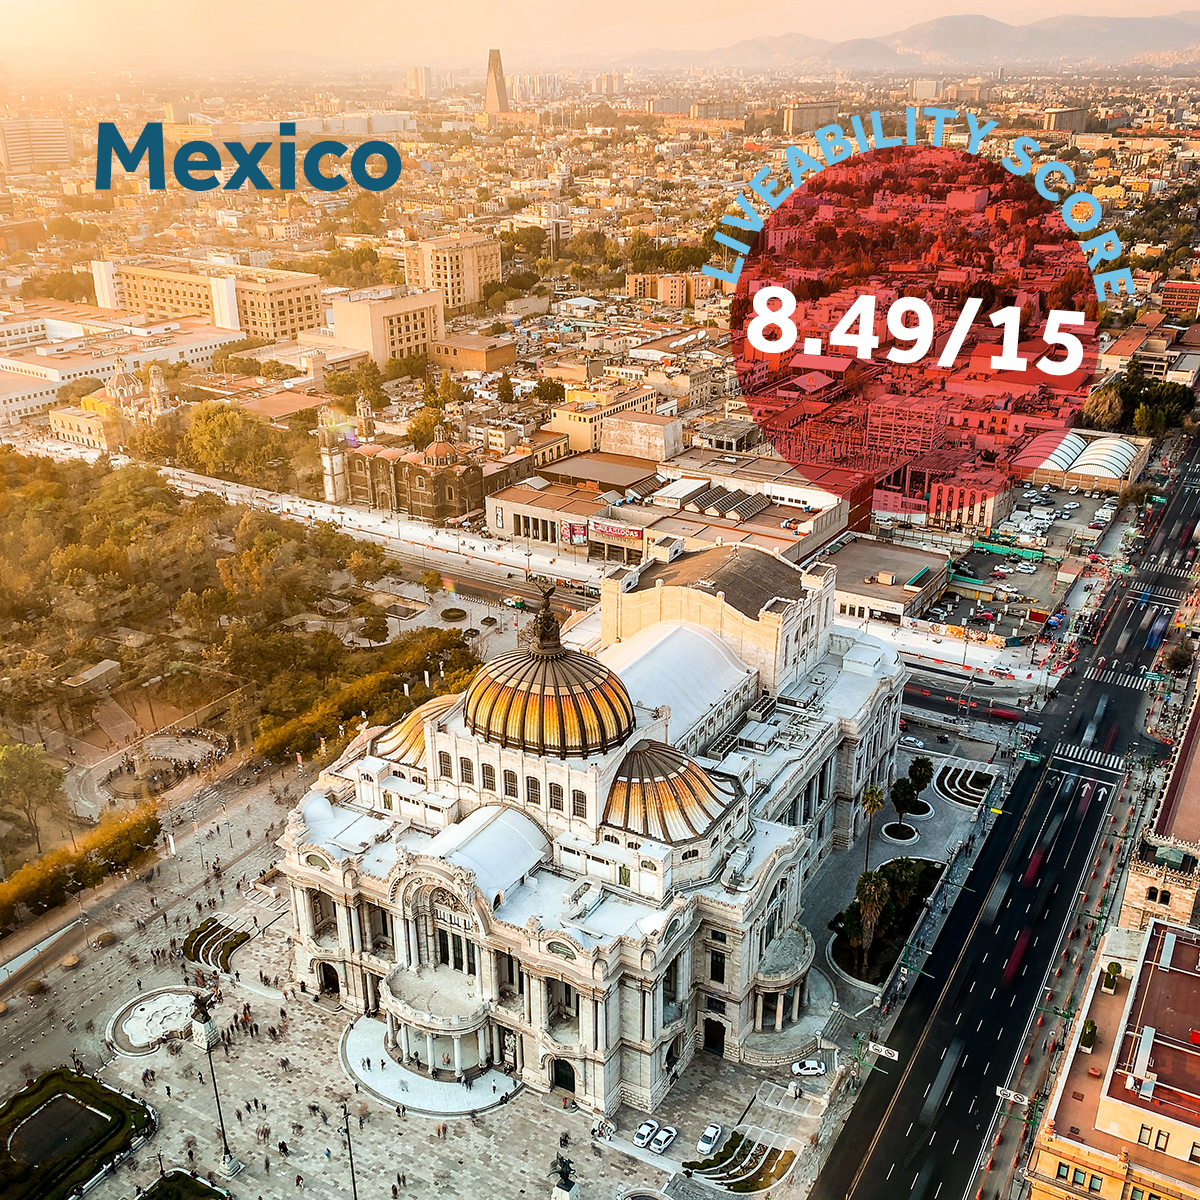 Mexico - US expat destination